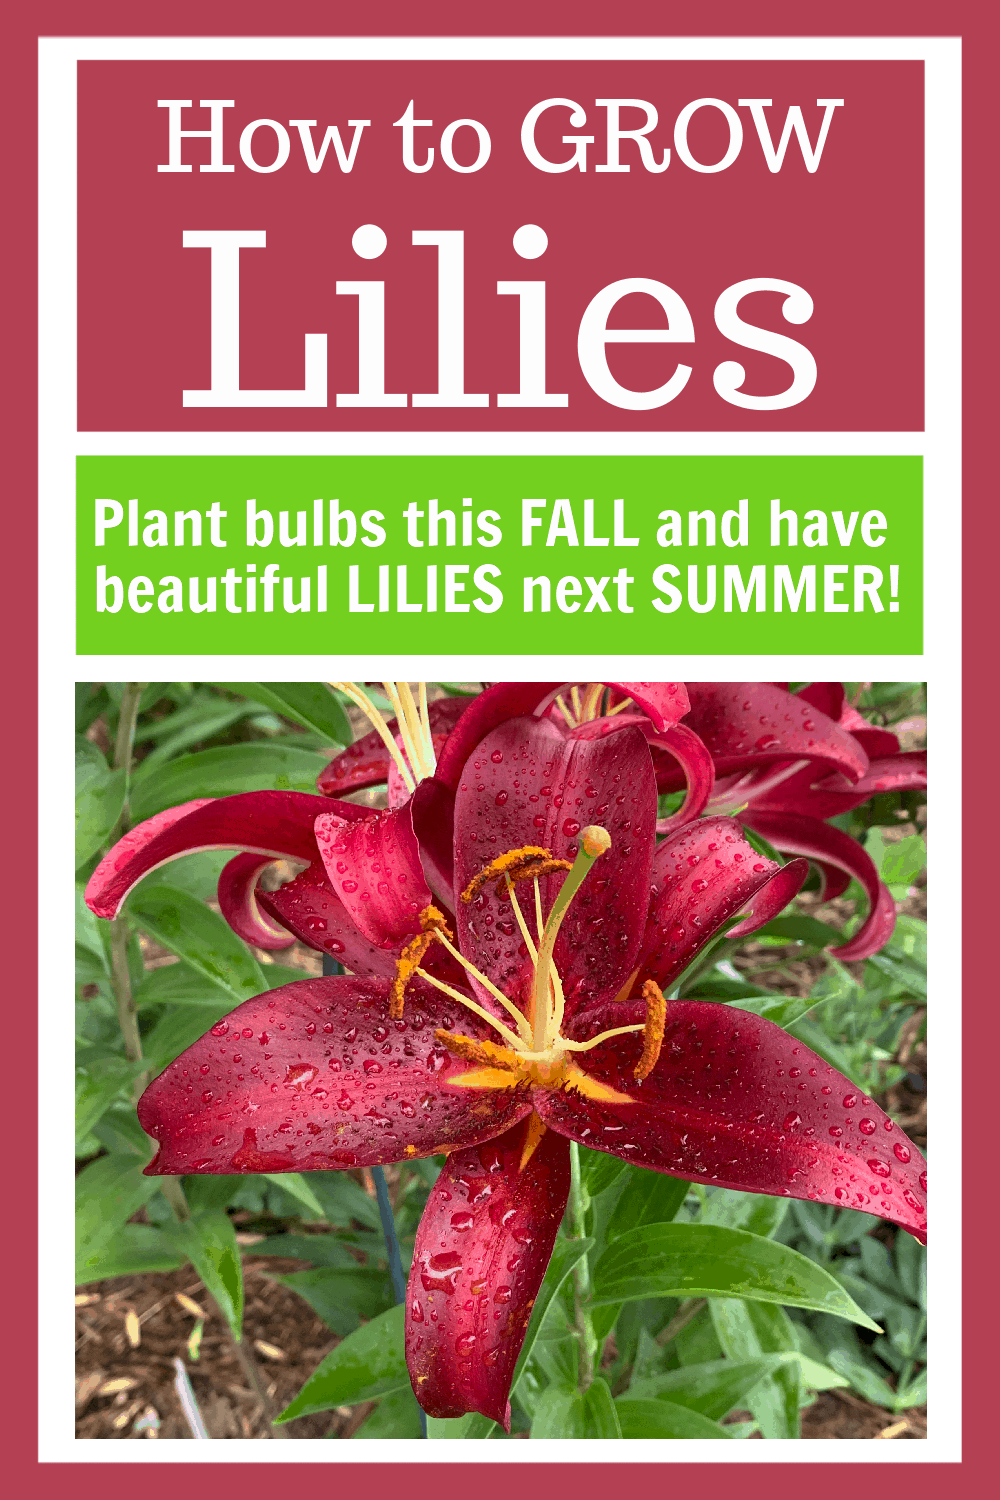 Image of Lilies with Text Overlay - How to Grow Lilies